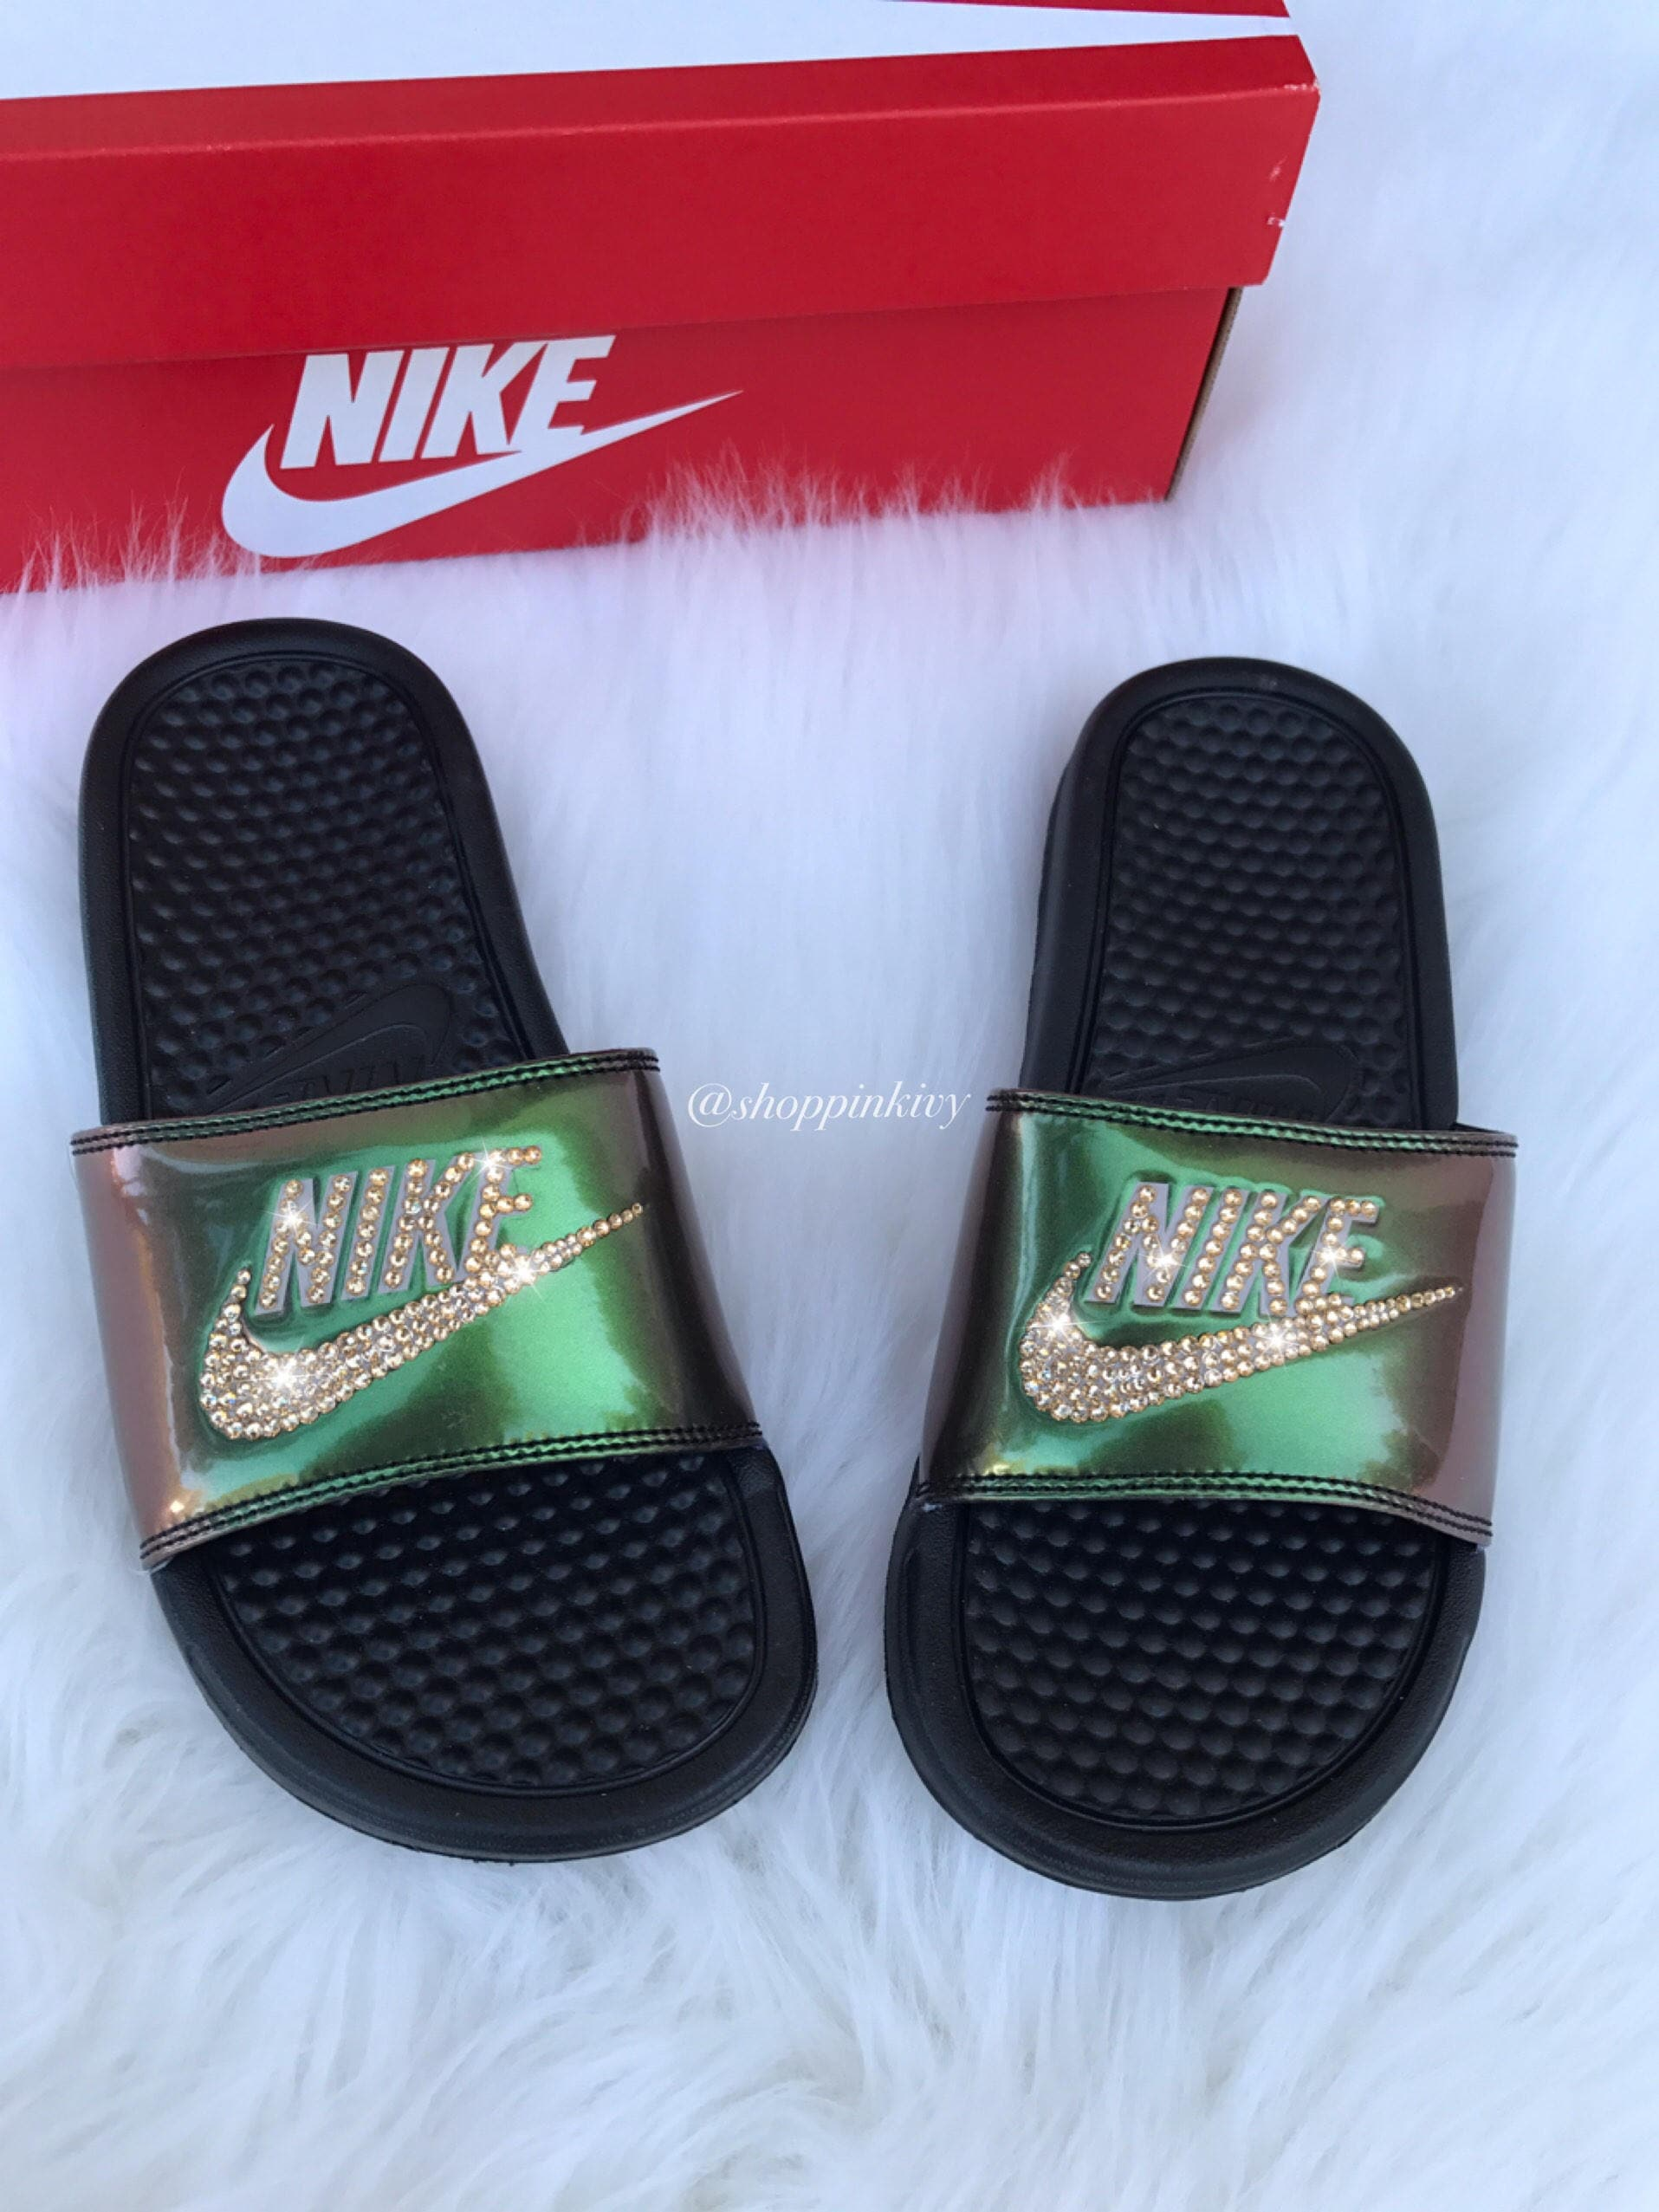 Swarovski Nike Benassi Print Slide Sandals customized with Swarovski  Crystals Bling Nike 0c4d6c505